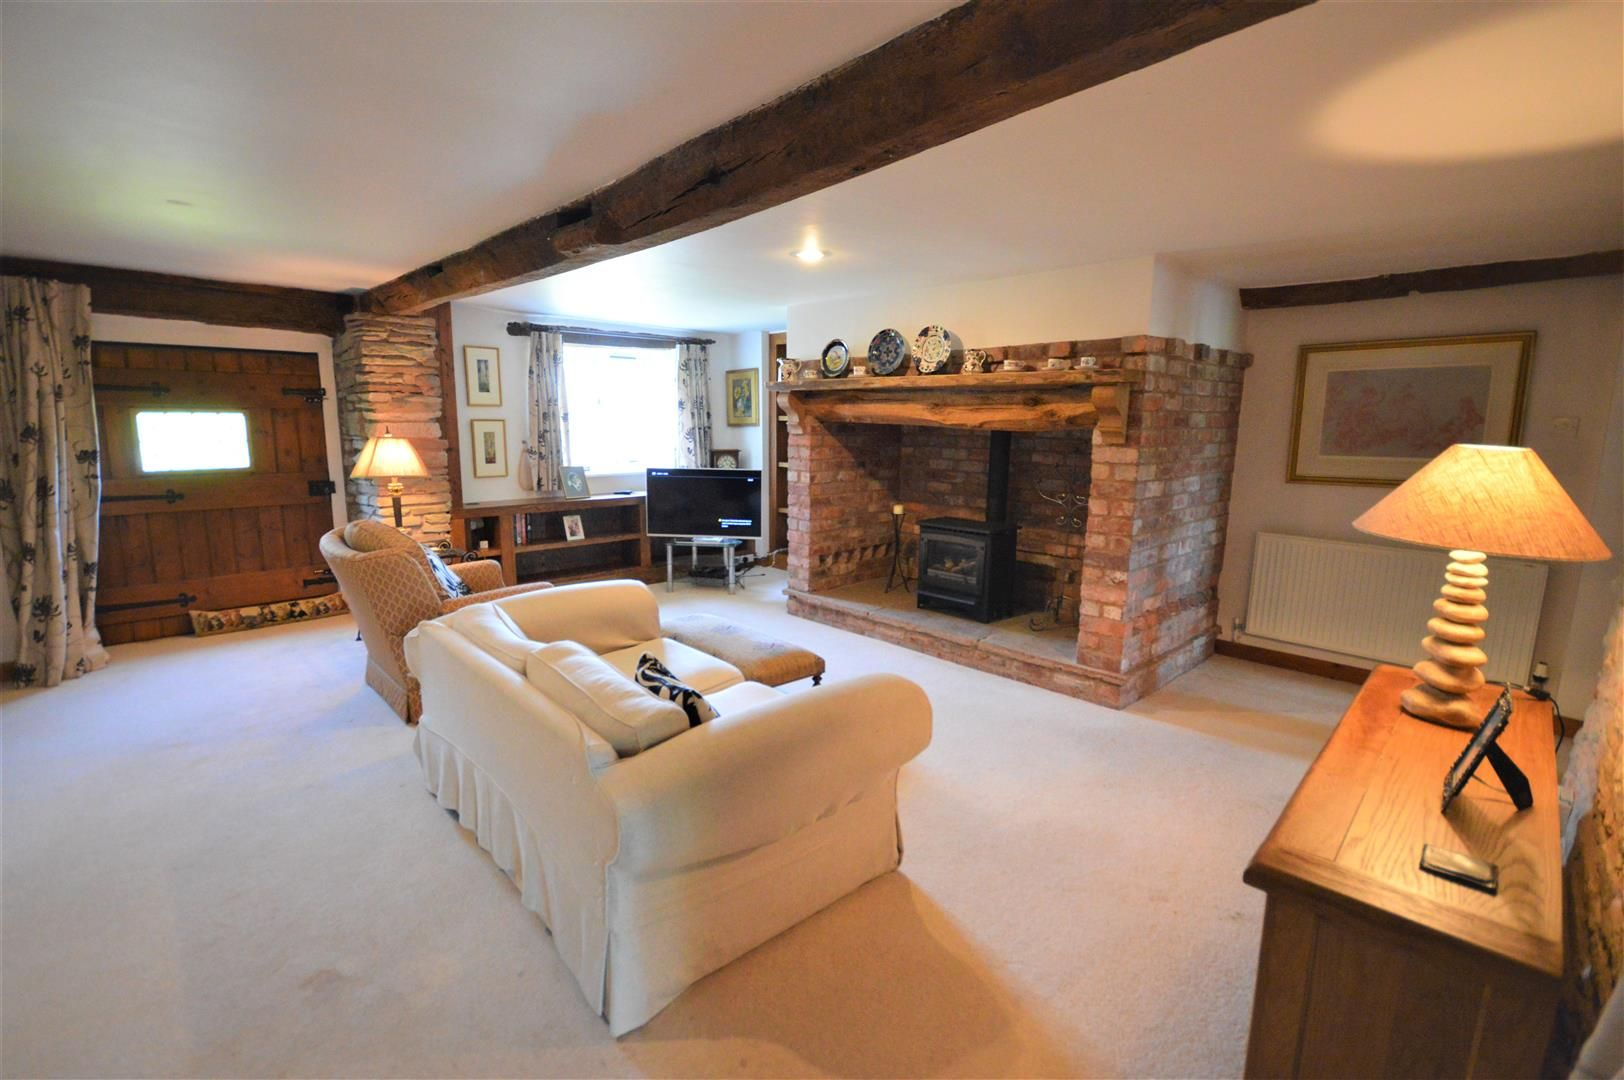 3 bed barn-conversion for sale in Stoke Prior  - Property Image 5